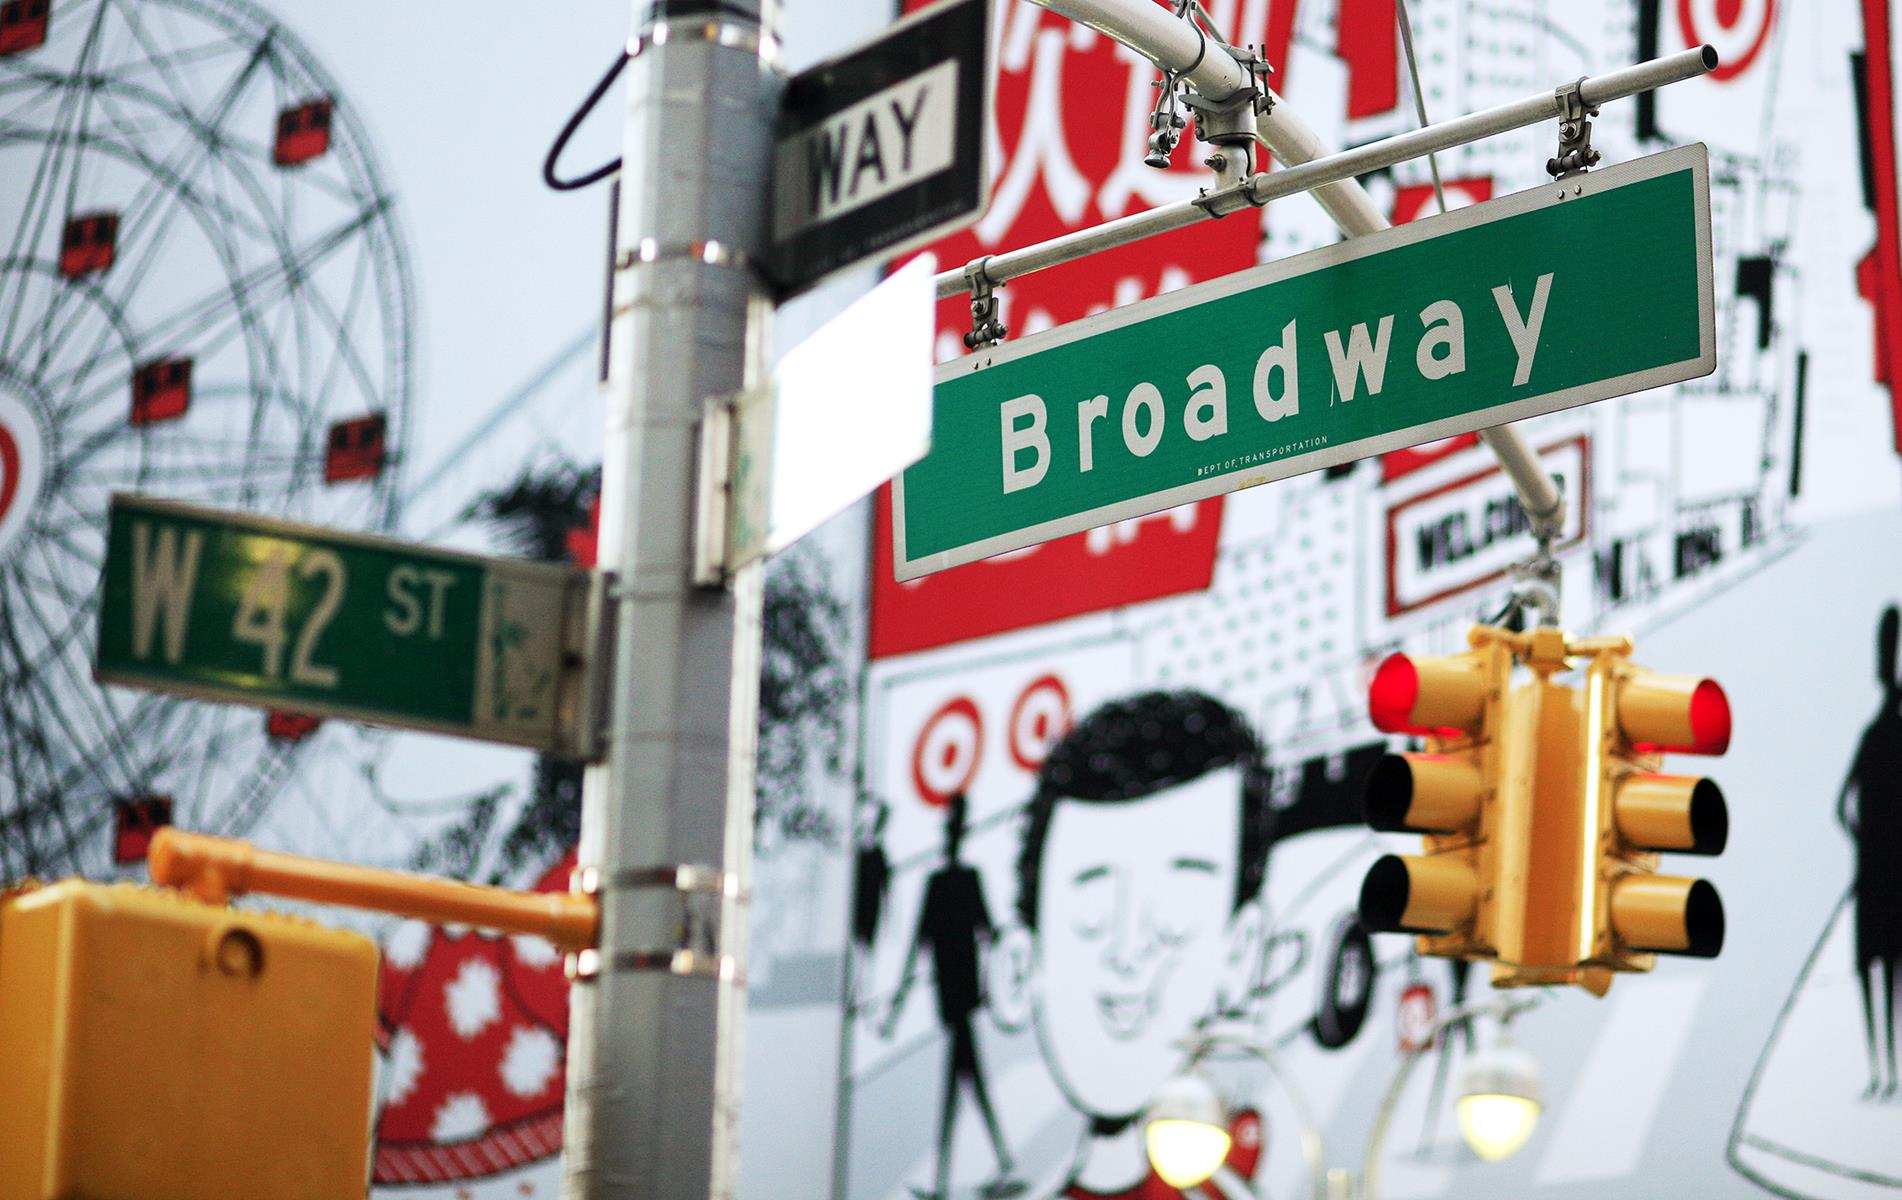 New York Offers Up a Solid Broadway Line-Up in 2016